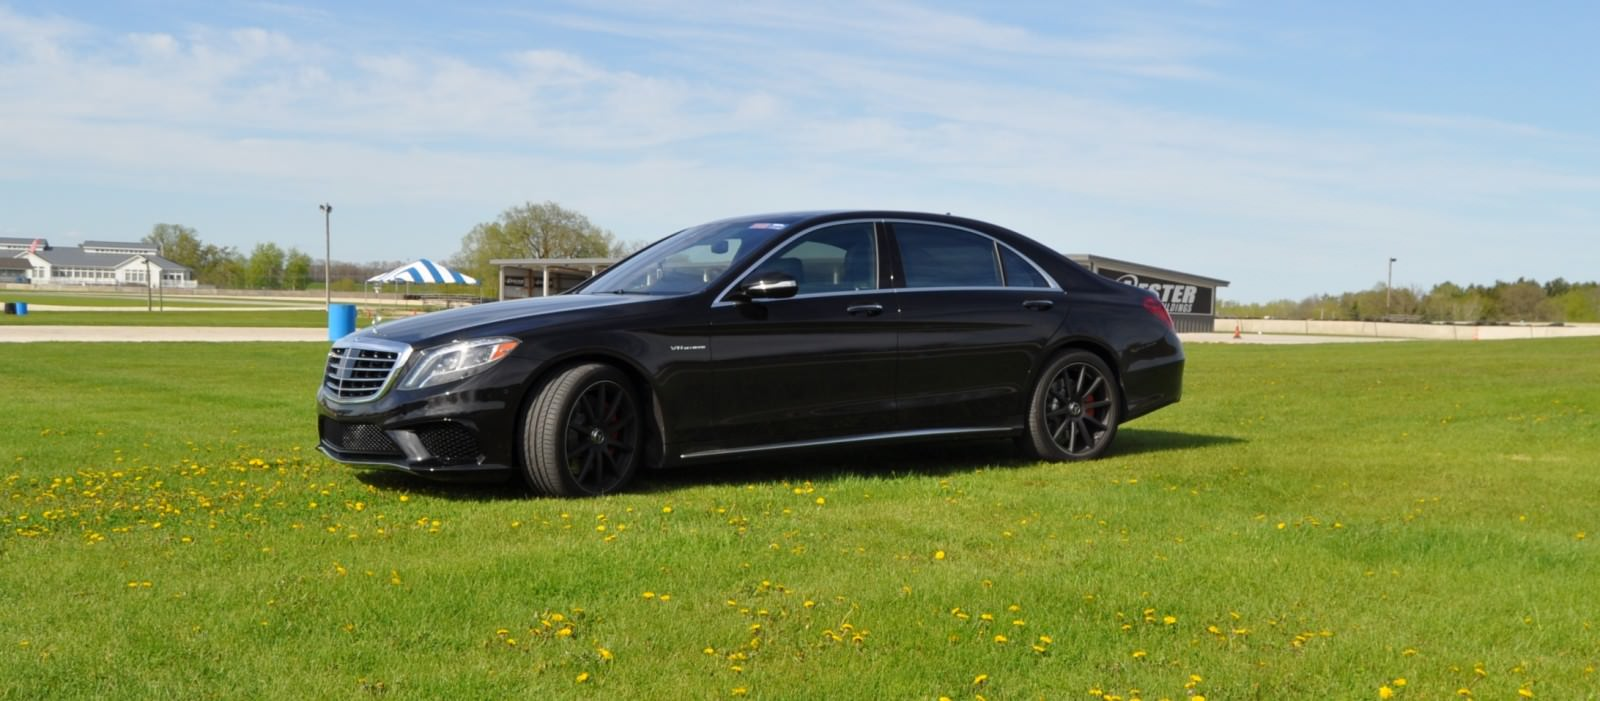 Road test review 2014 mercedes benz s63 amg 4matic sedan for Mercedes benz s63 2014 price